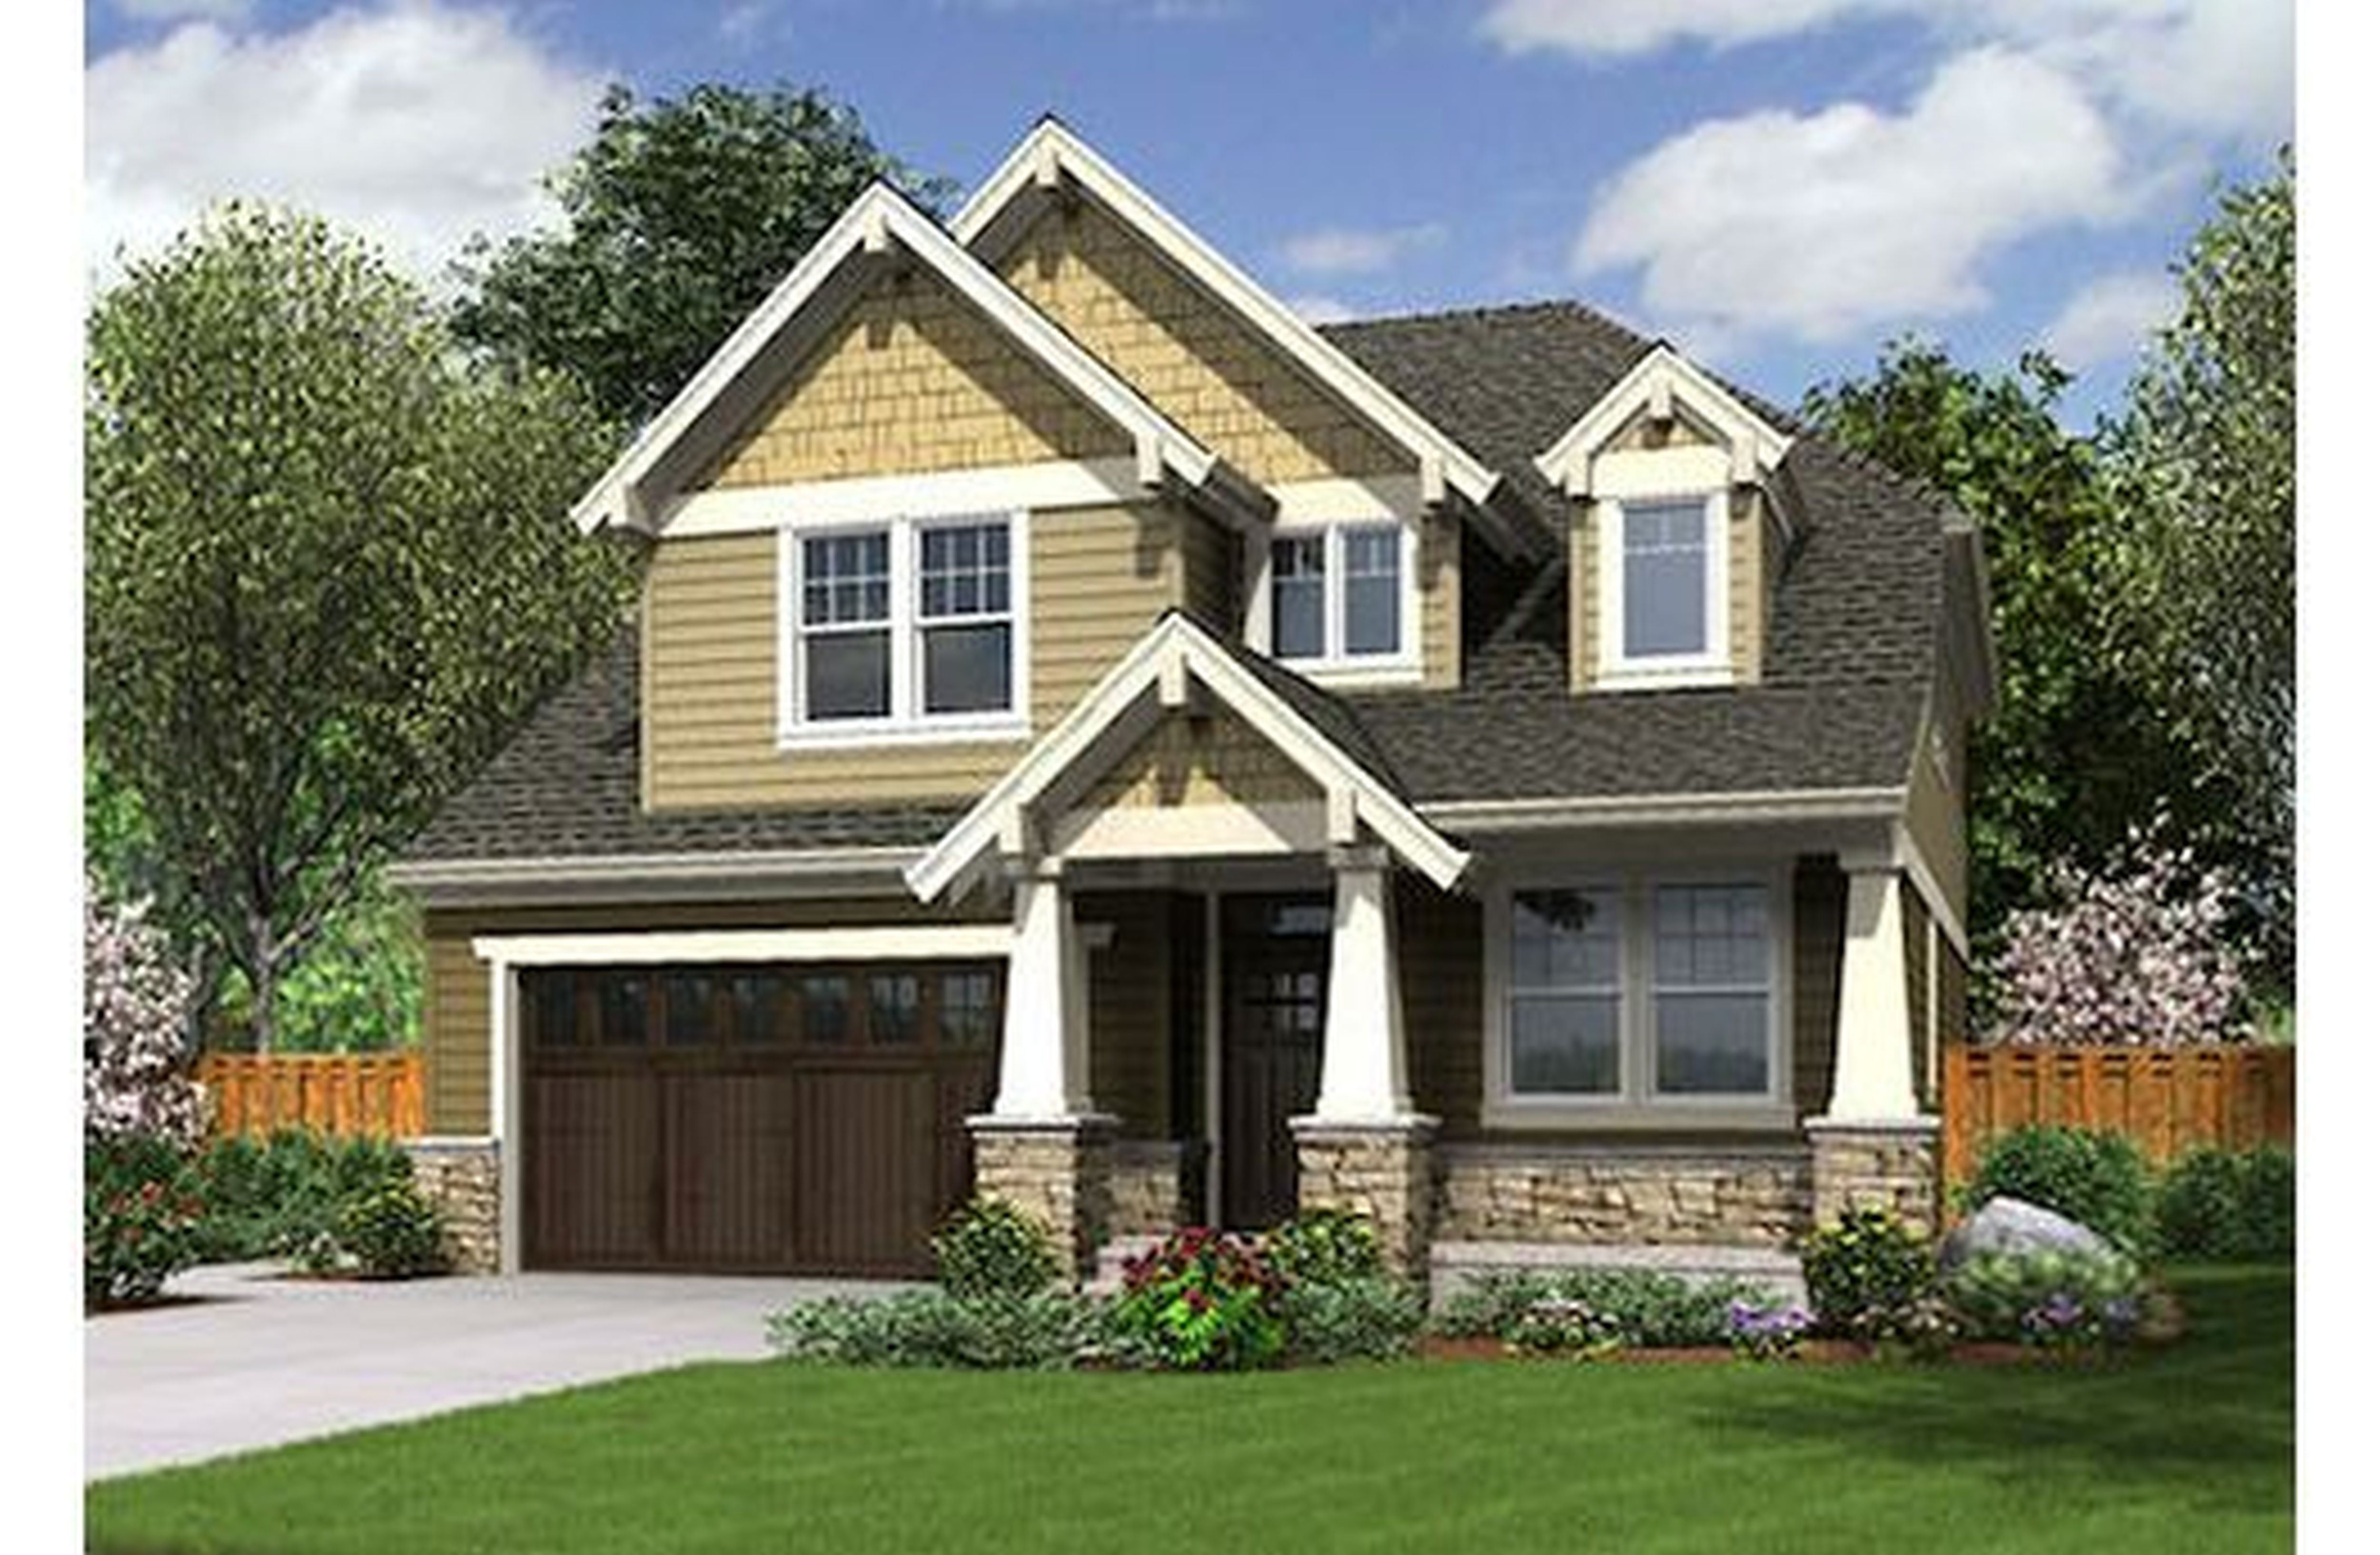 Owning A Home Is A Keystone Of Wealth Both Financial Affluence And Emotional Security Suze Orman Narrow Lot House Plans Craftsman House Plans House Plans